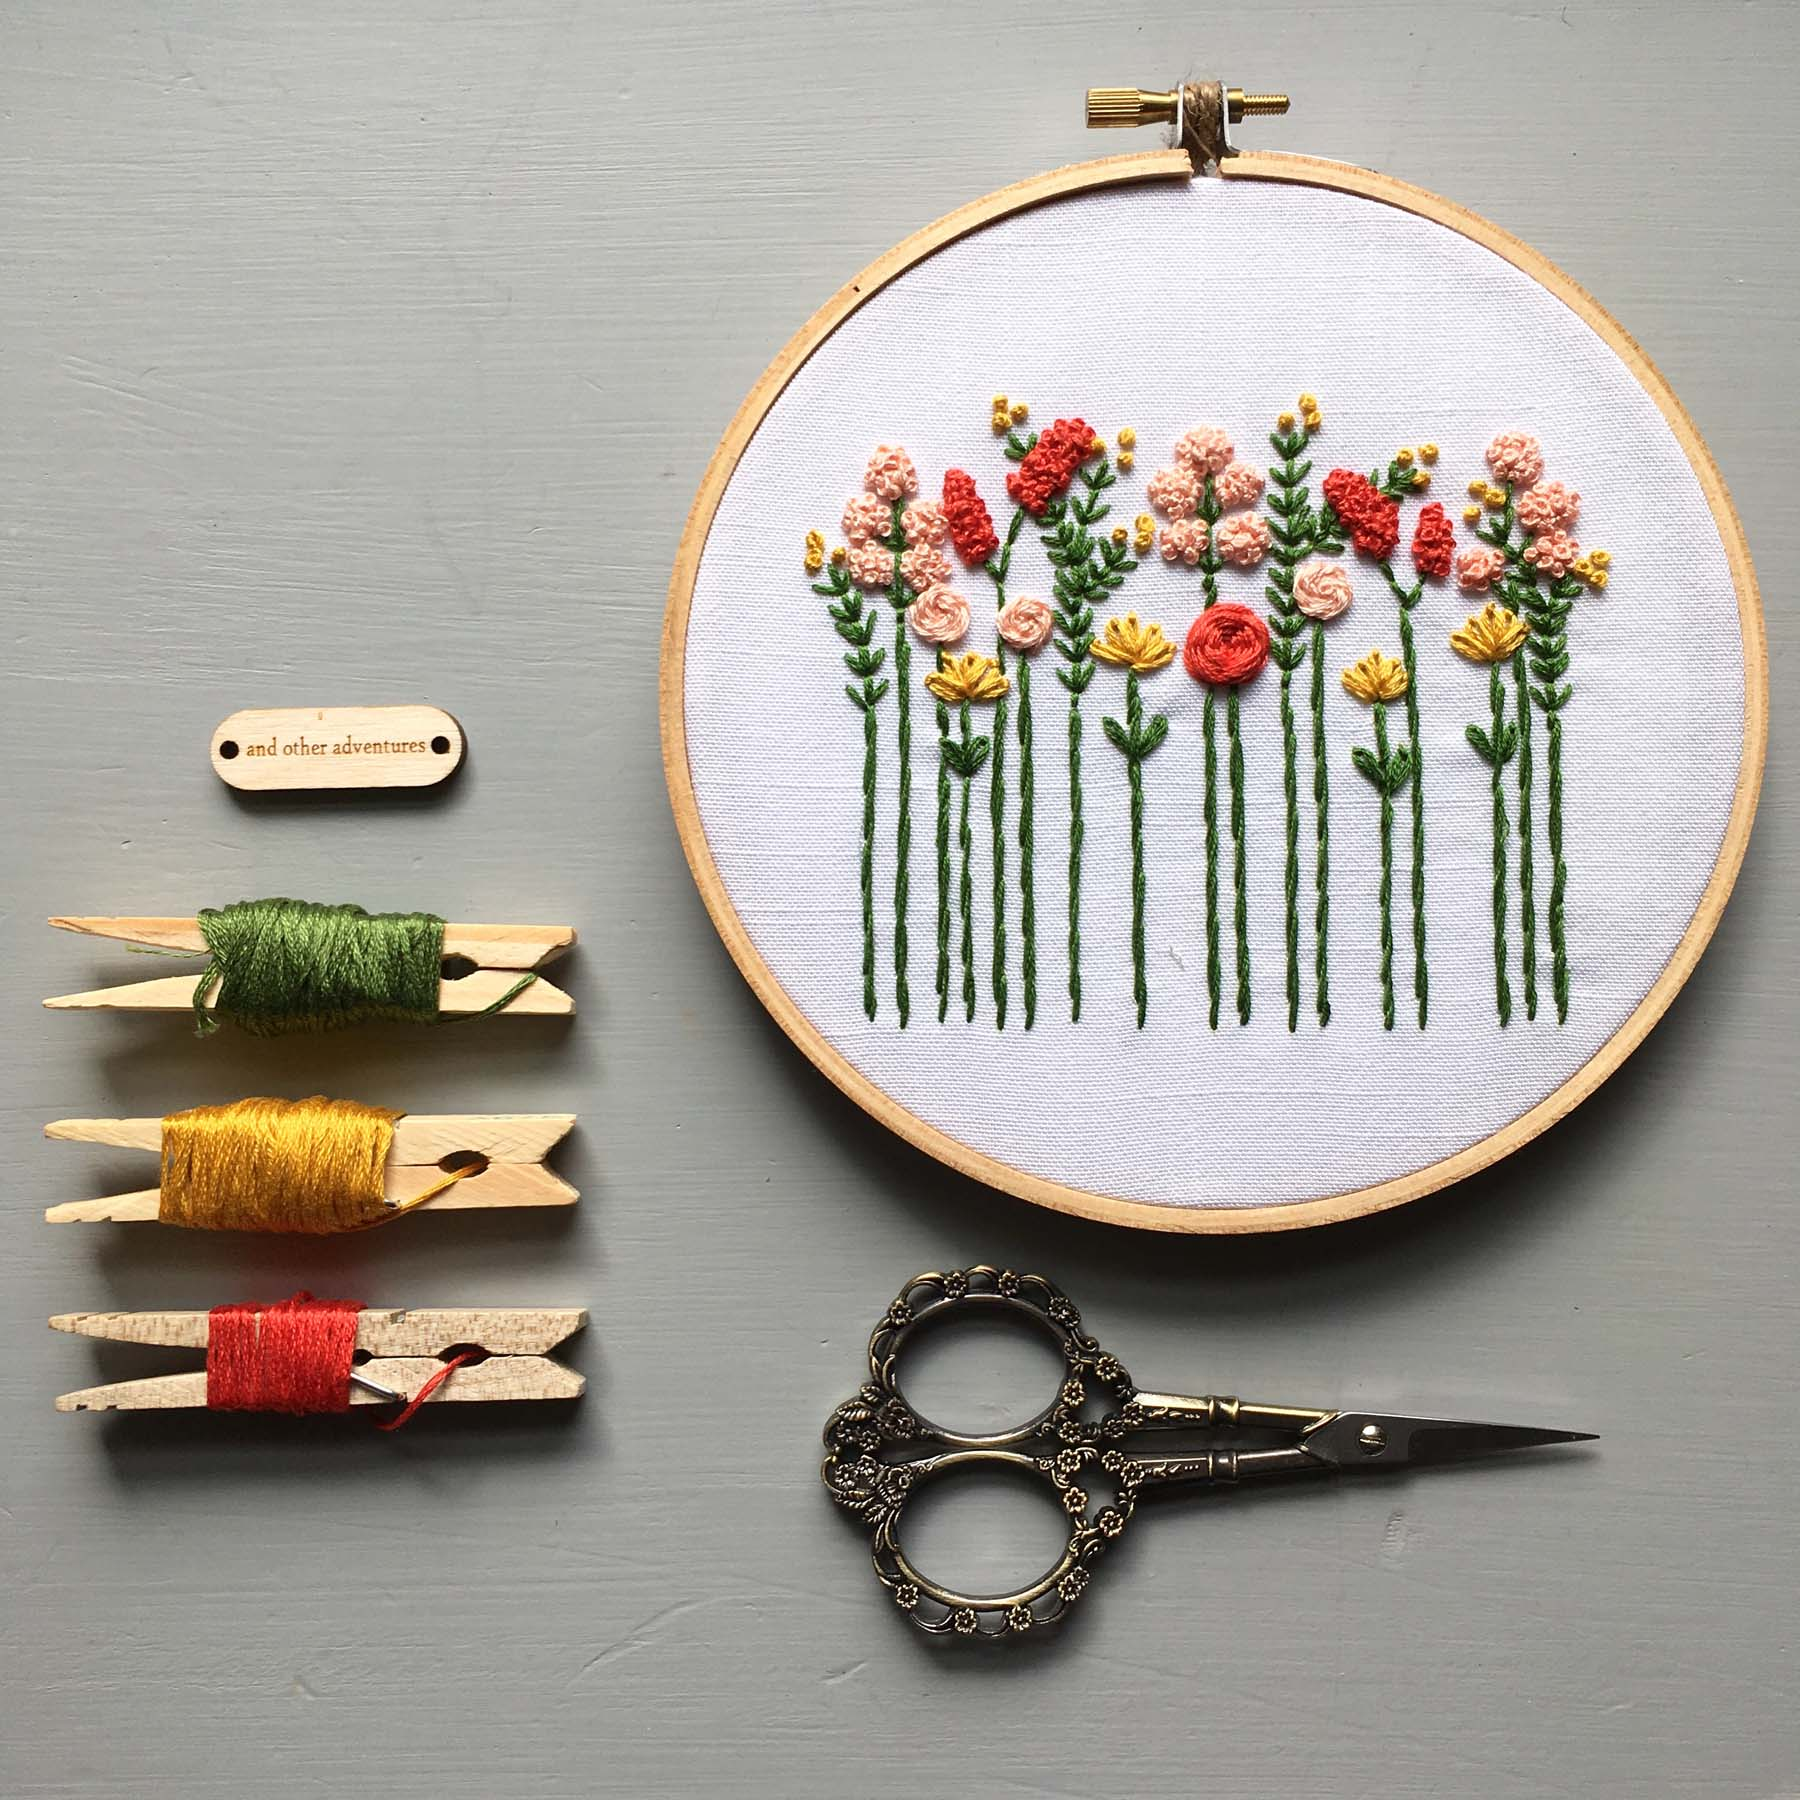 Beginner Hand Embroidery Pattern - Summer Wildflowers Digital Download